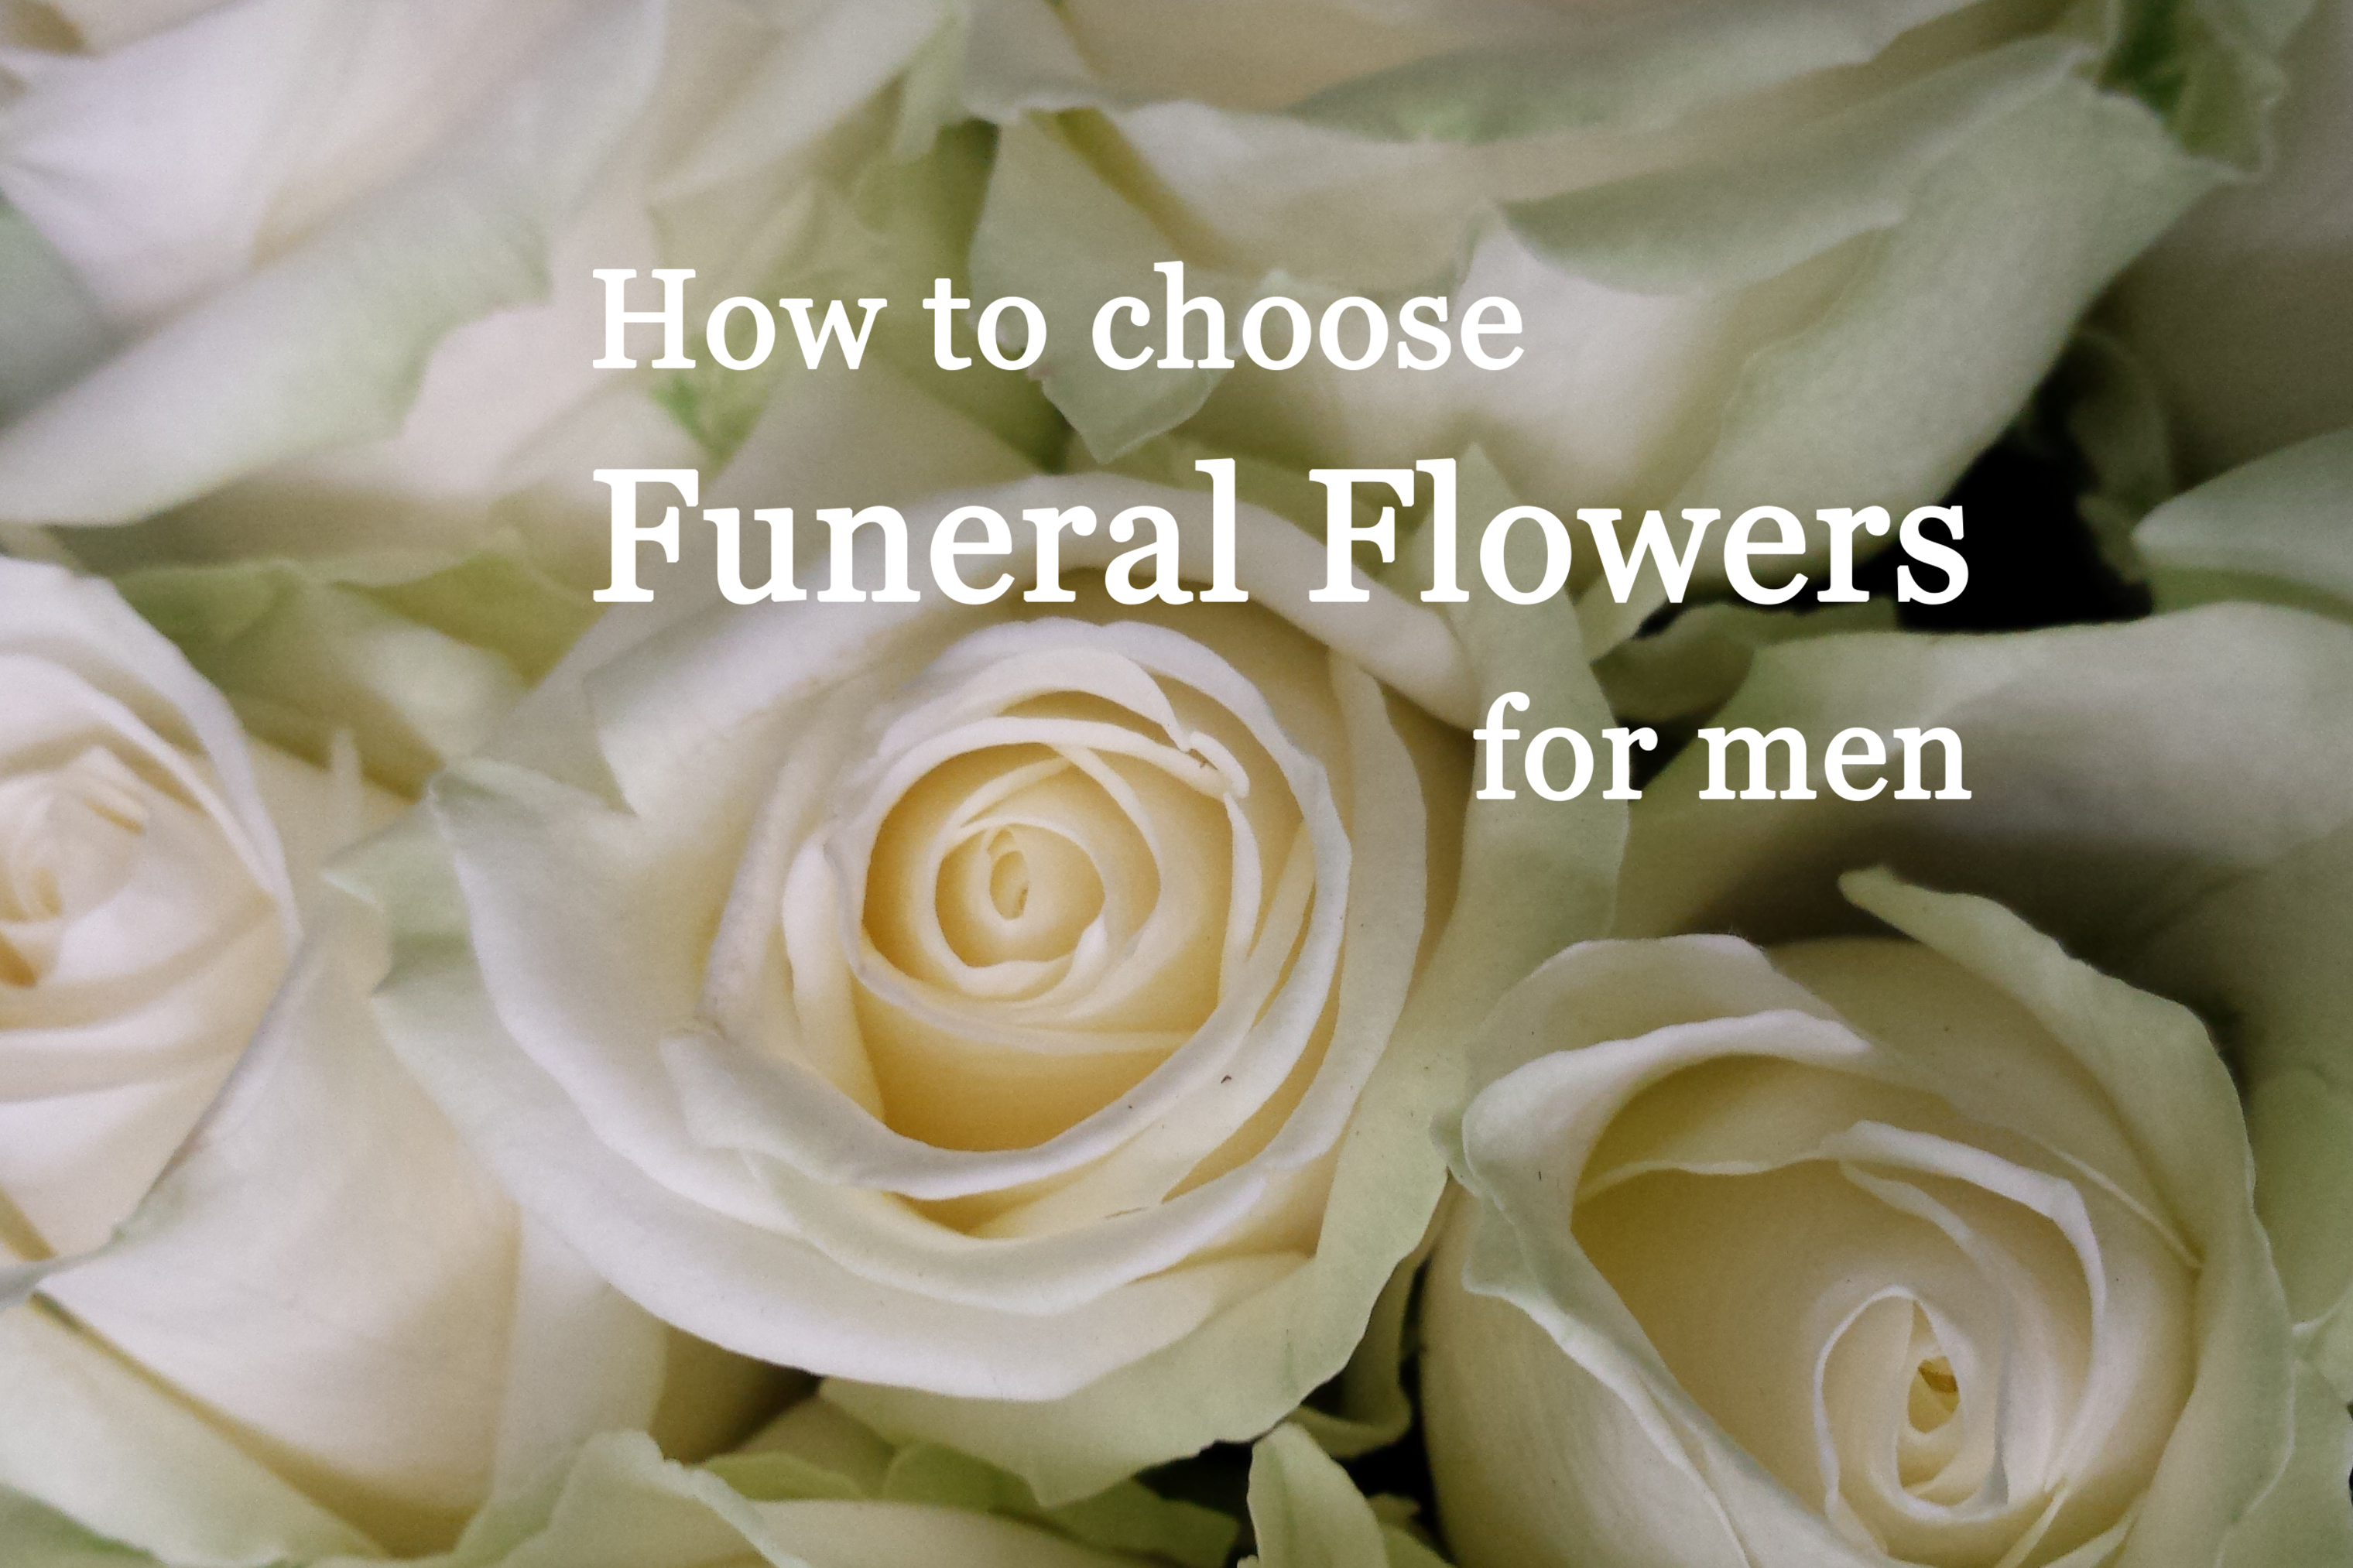 Funeral flowers suitable for menflower press funeral flowers for men izmirmasajfo Image collections